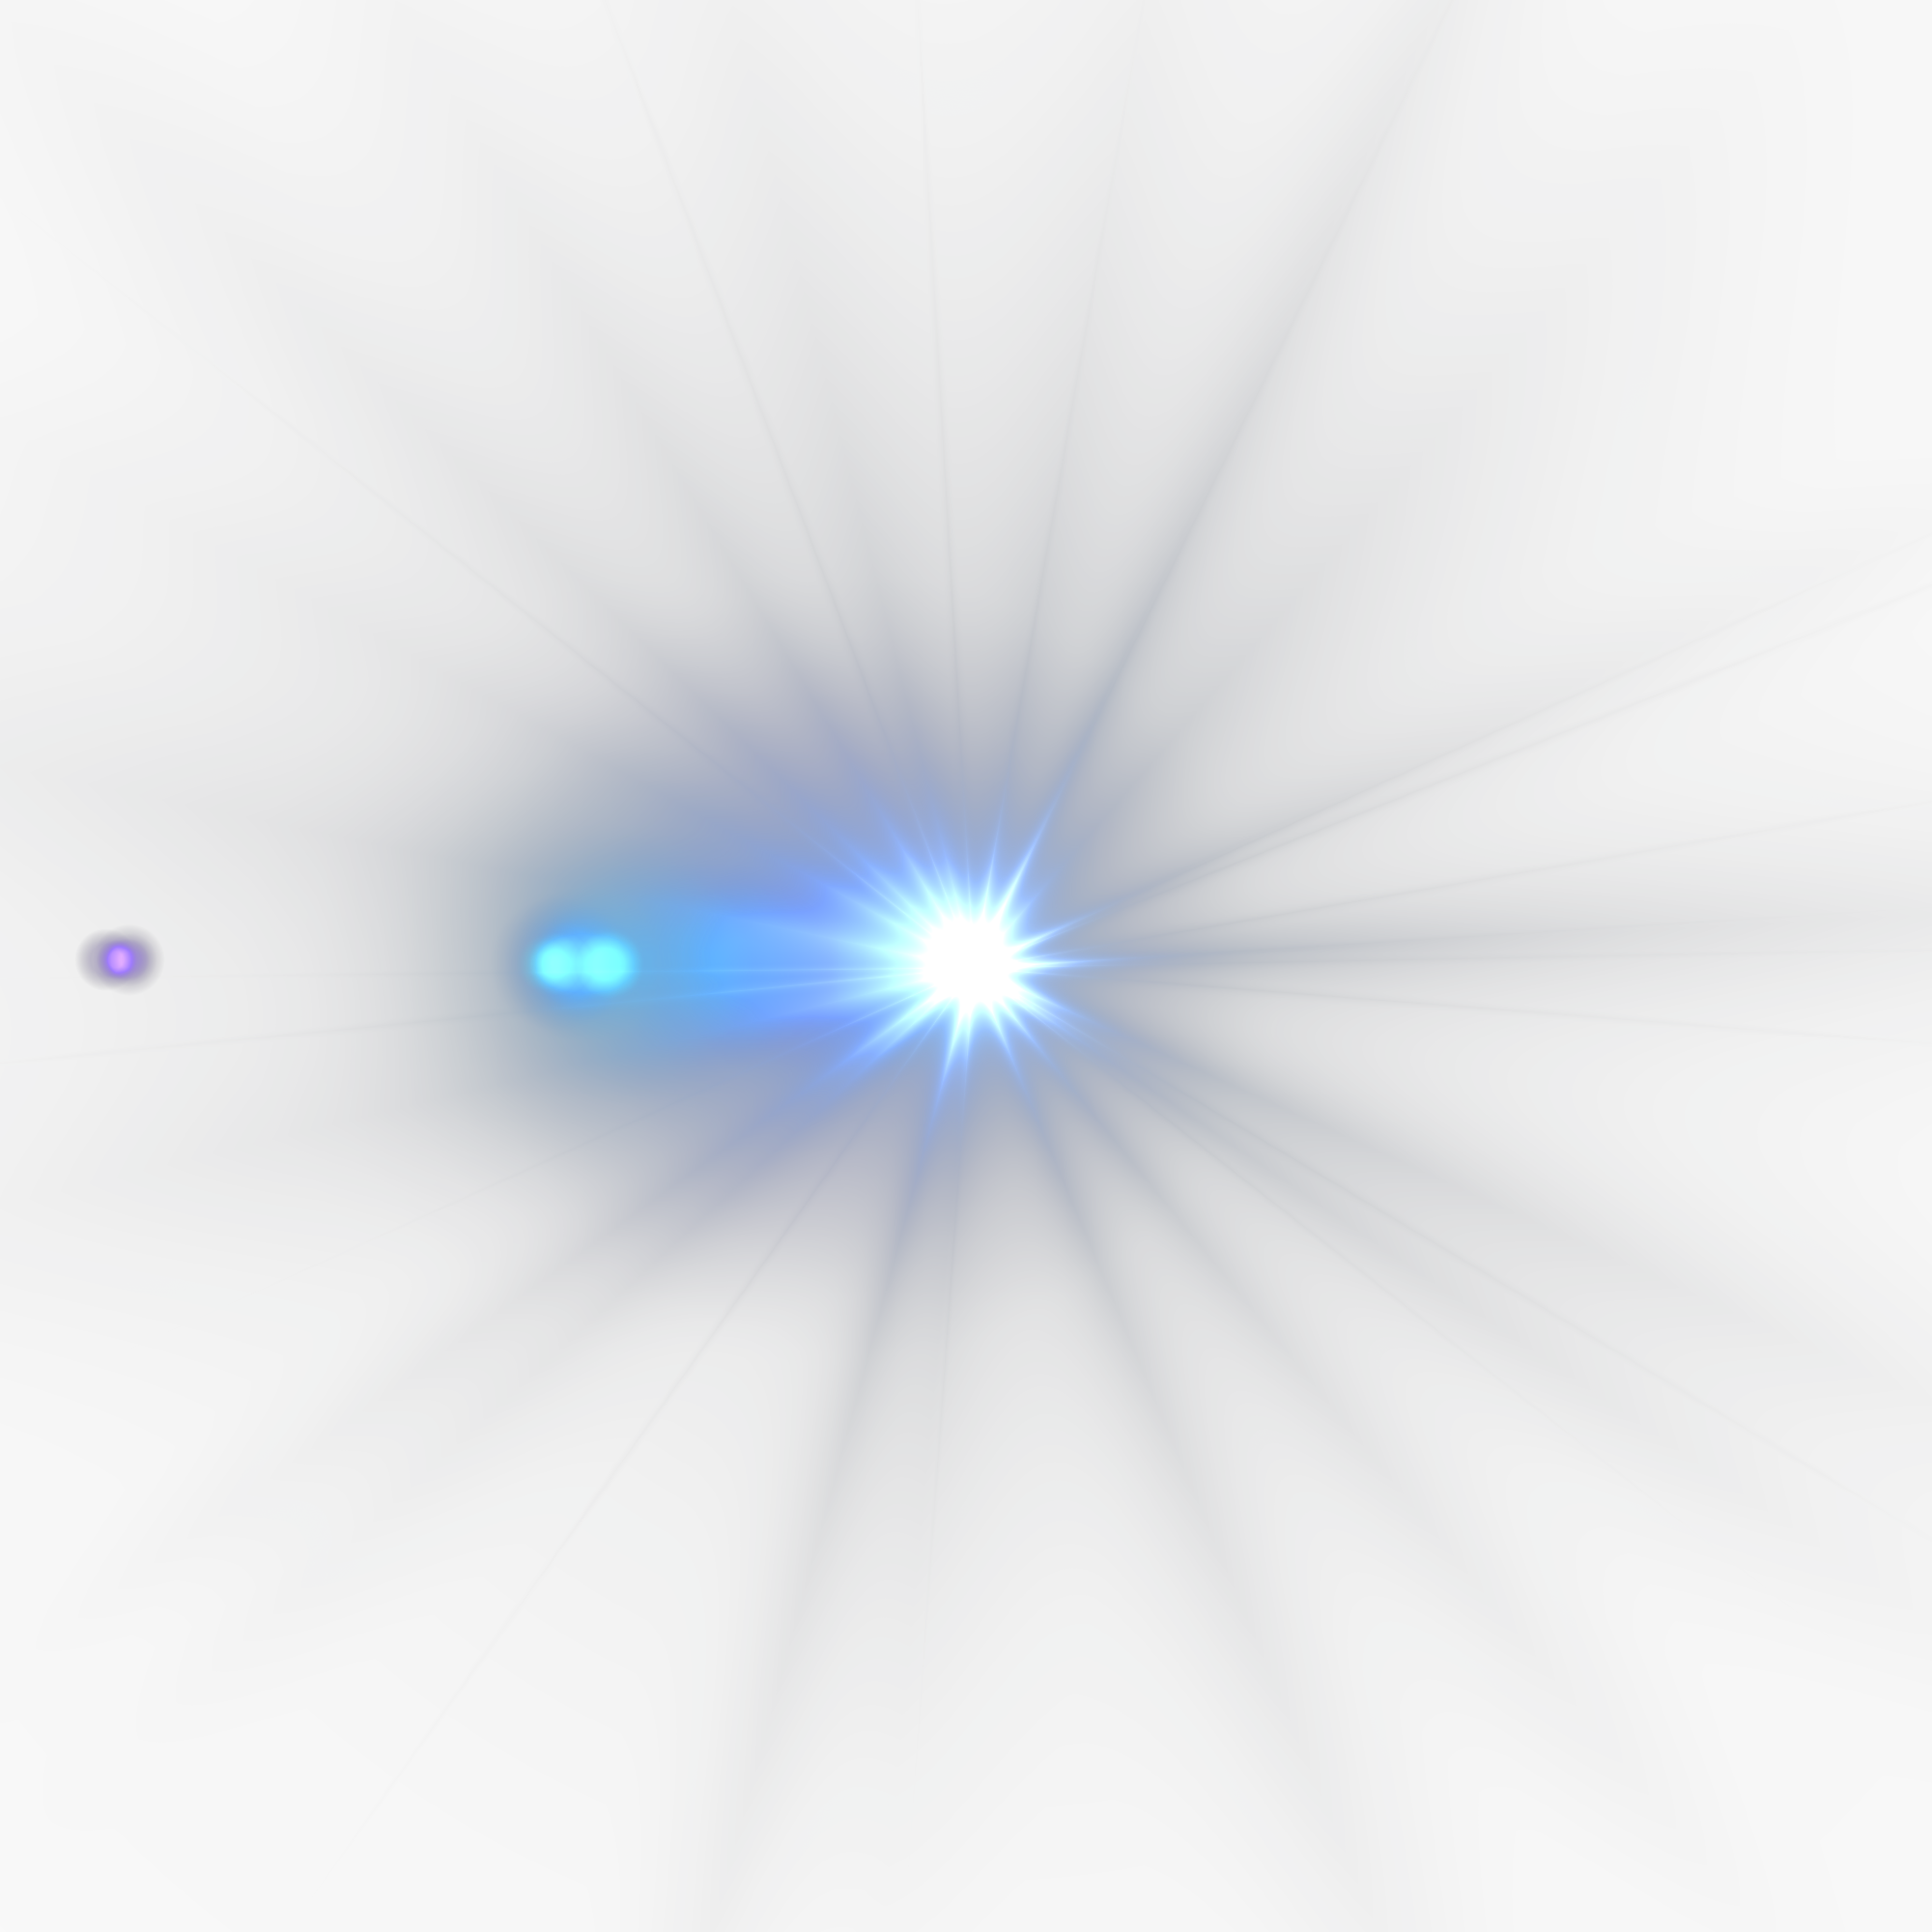 HD And Blue Light Effect Lens Translucency Transparency.